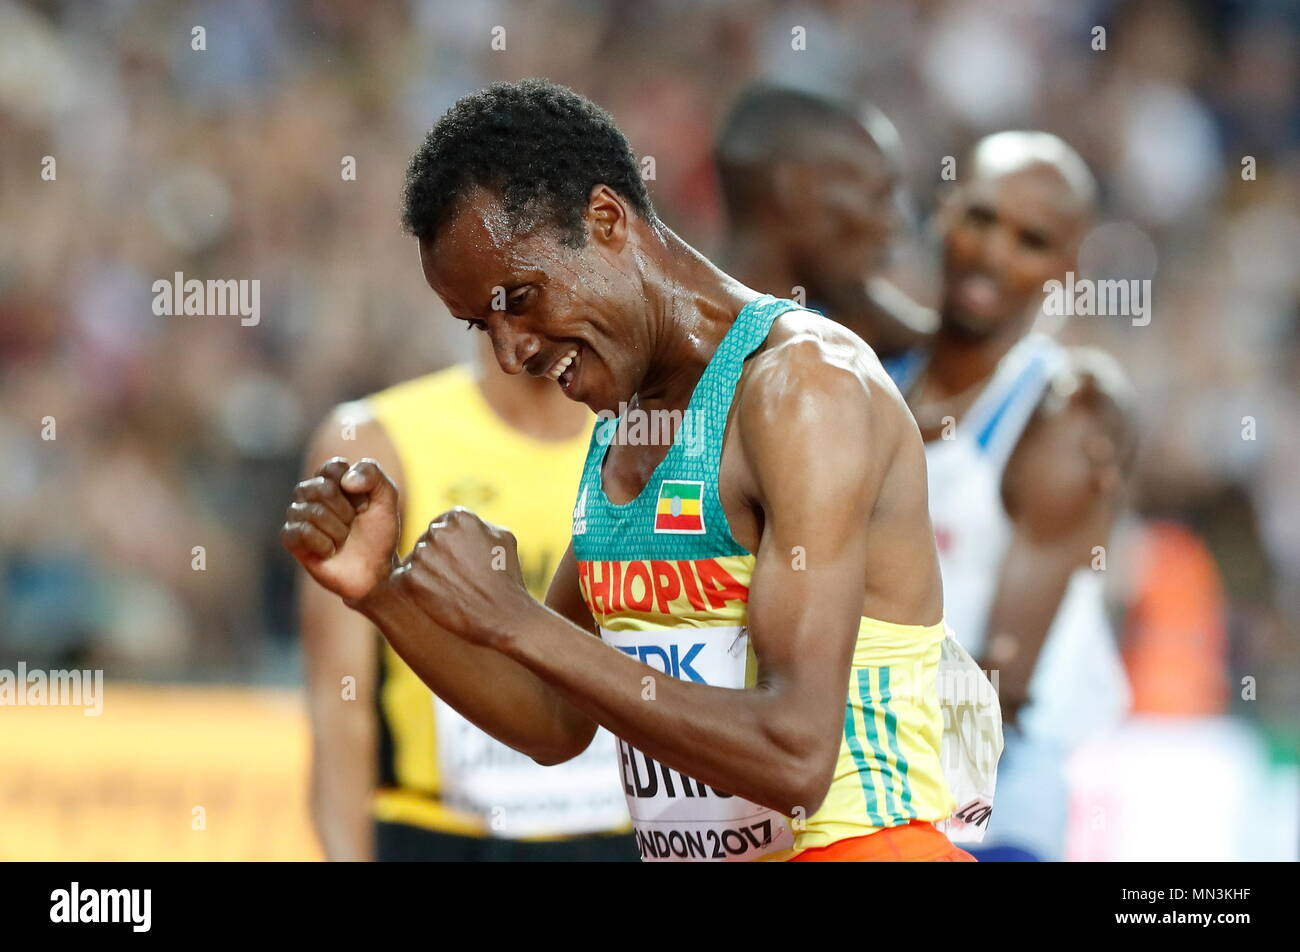 LONDON, ENGLAND - AUGUST 12: Muktar Edris of Ethiopia celebrates after the winning the Men's 5000 Metres Final, with Mo Farrah during day nine of the 16th IAAF World Athletics Championships London 2017 at The London Stadium on August 12, 2017 in London, United Kingdom --- Image by © Paul Cunningham - Stock Image